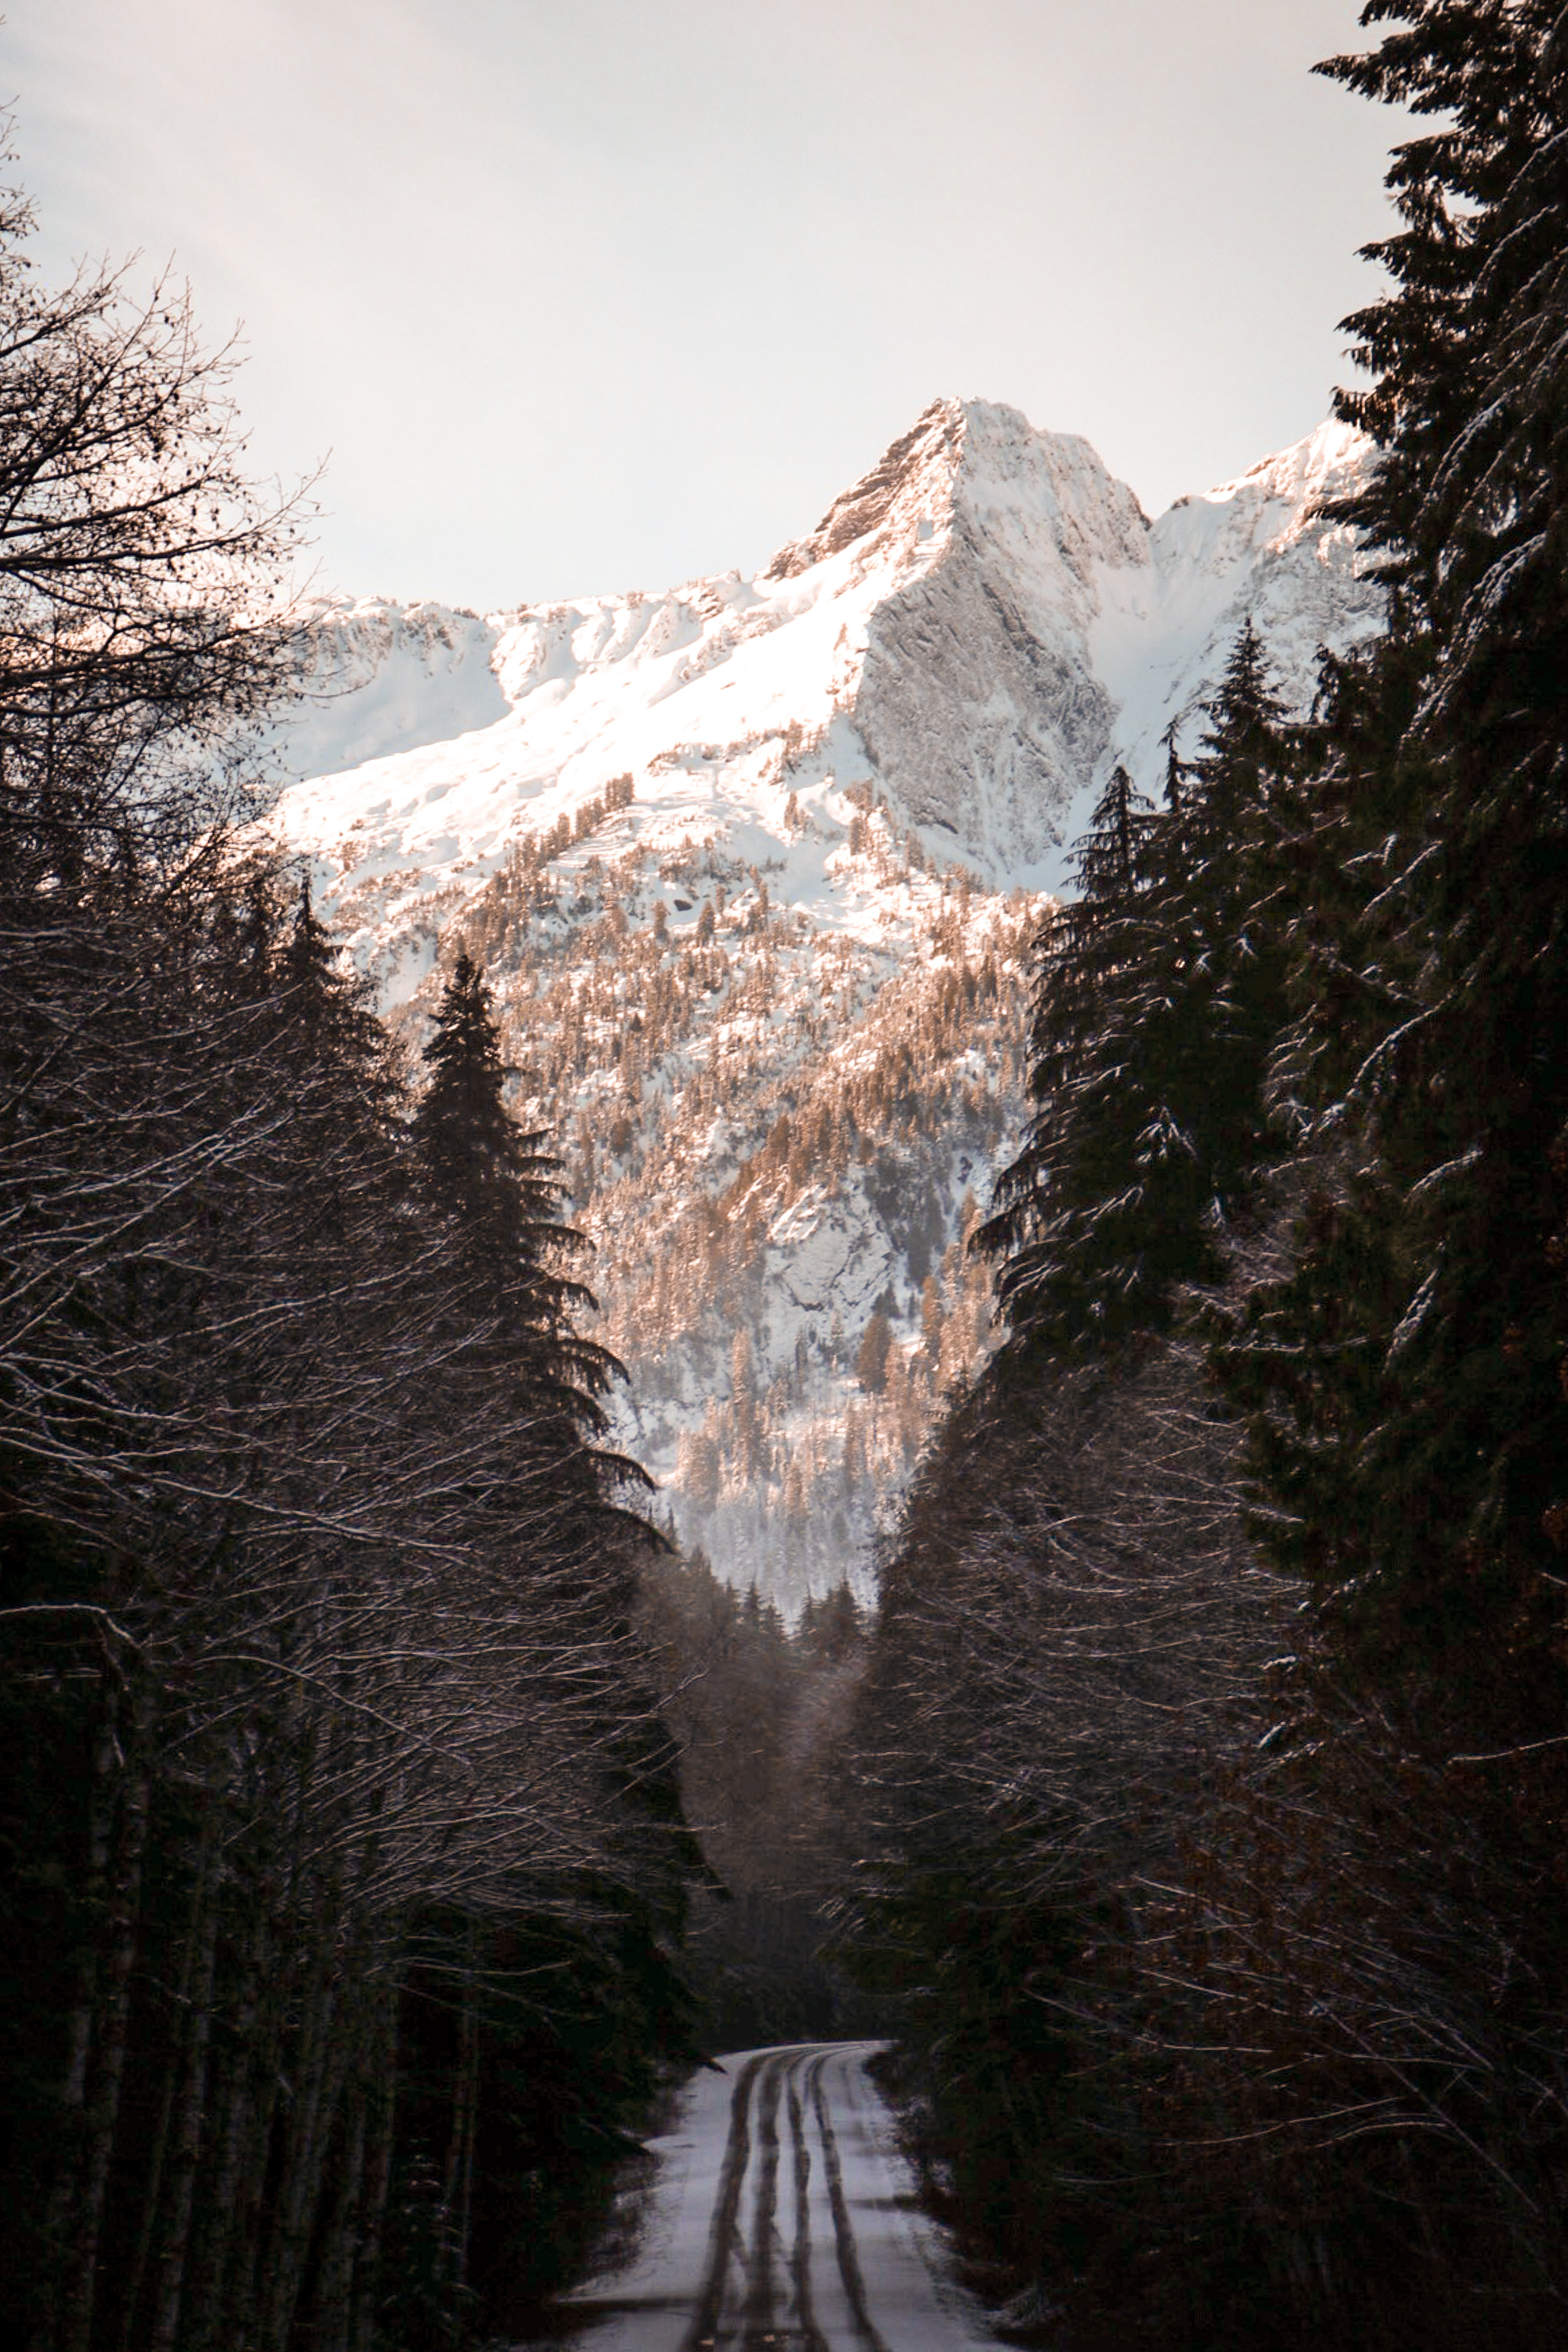 mountain surrounded by trees